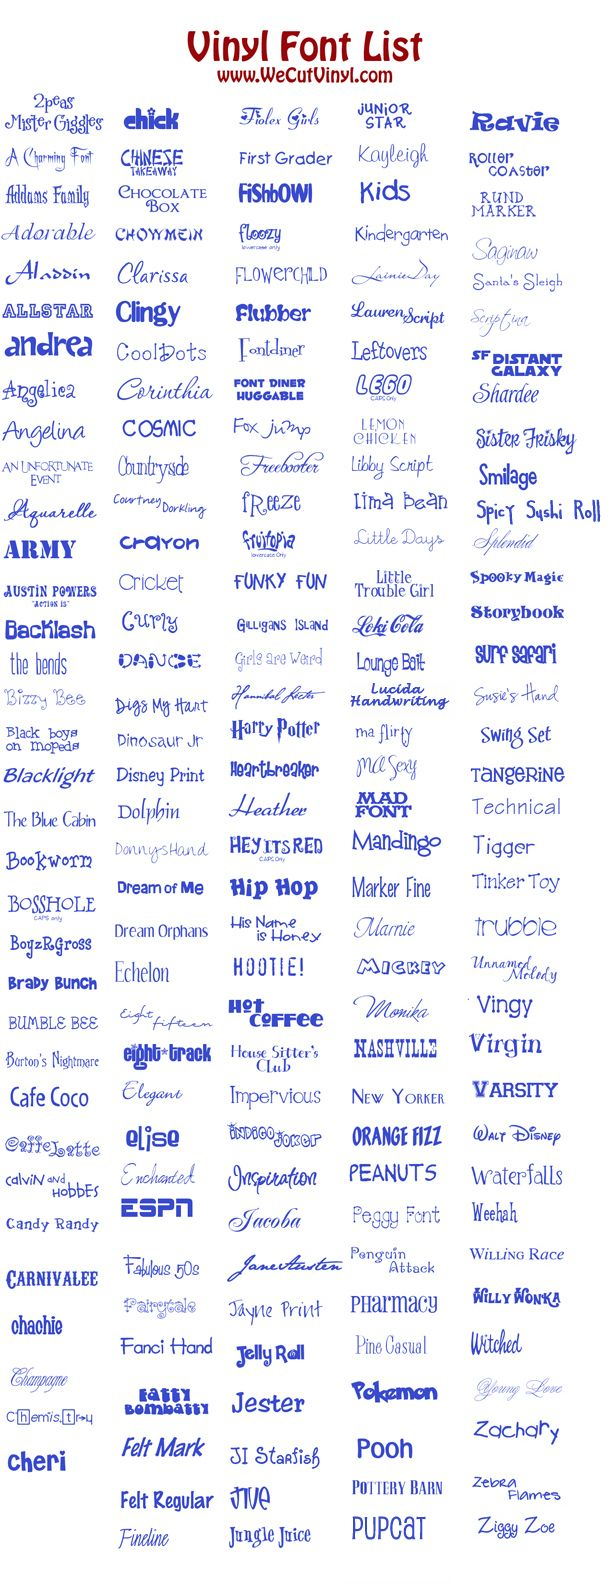 Font list - cannot download fonts from link but can find online. Good fonts for vinyl cutting